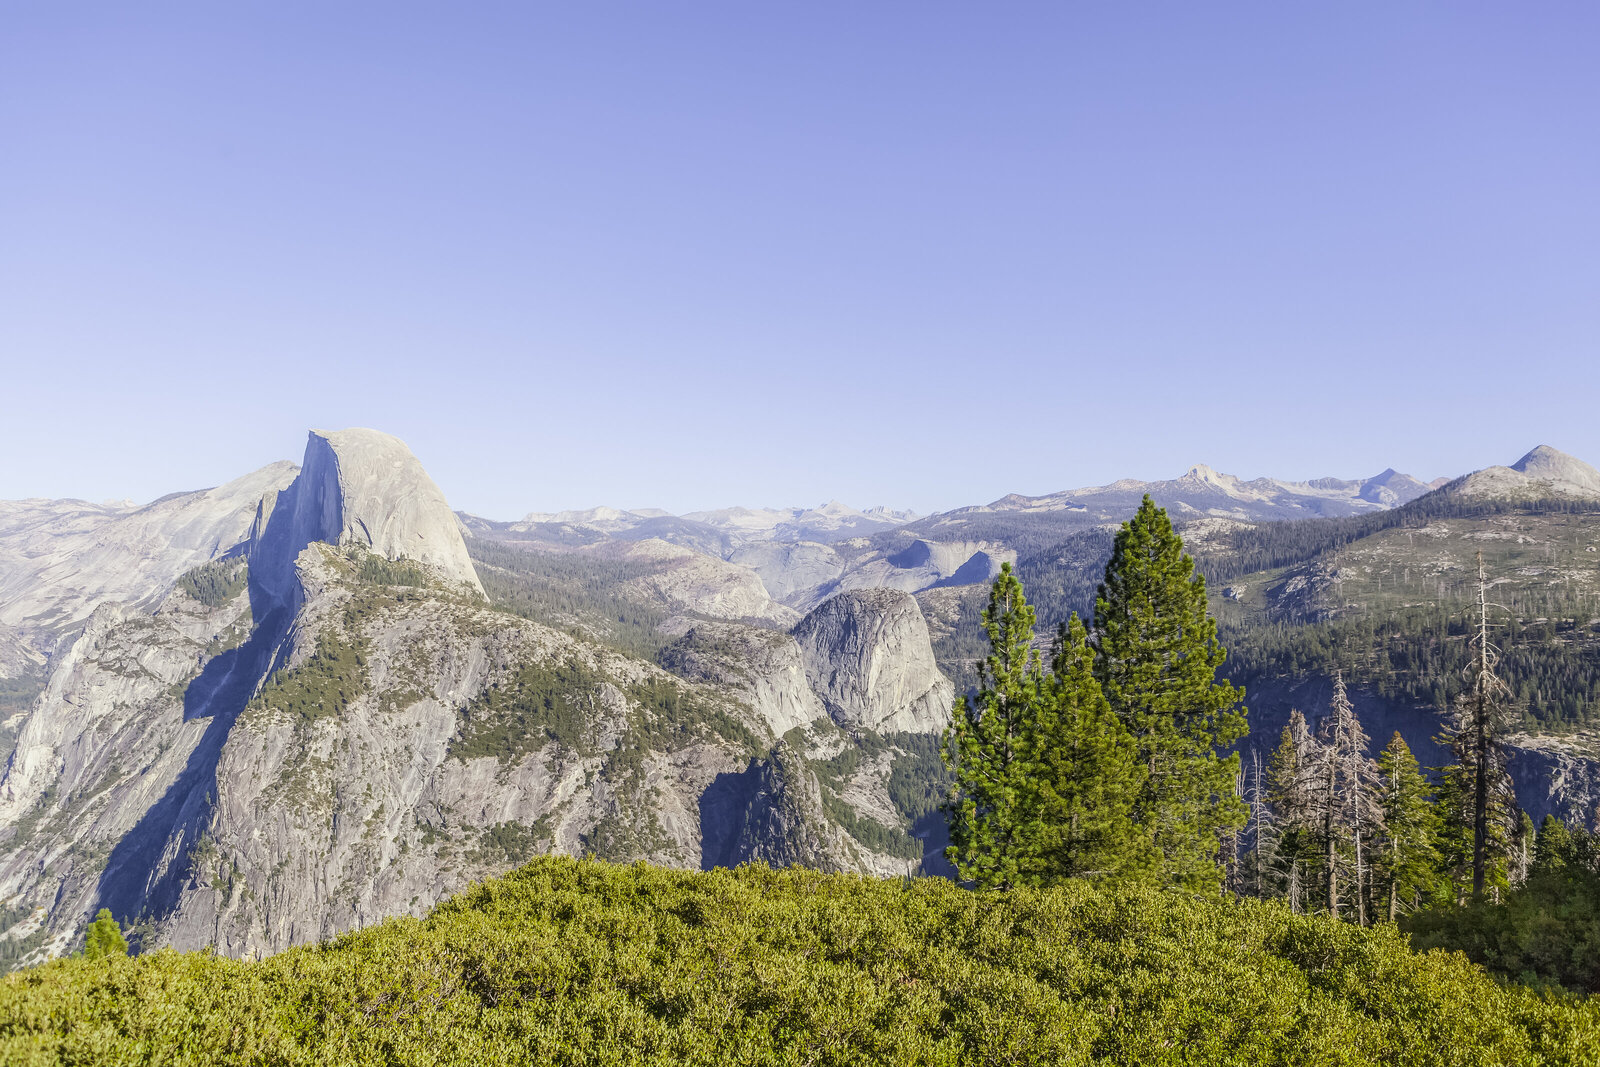 078-KBP-Yosemite-National-Park-001